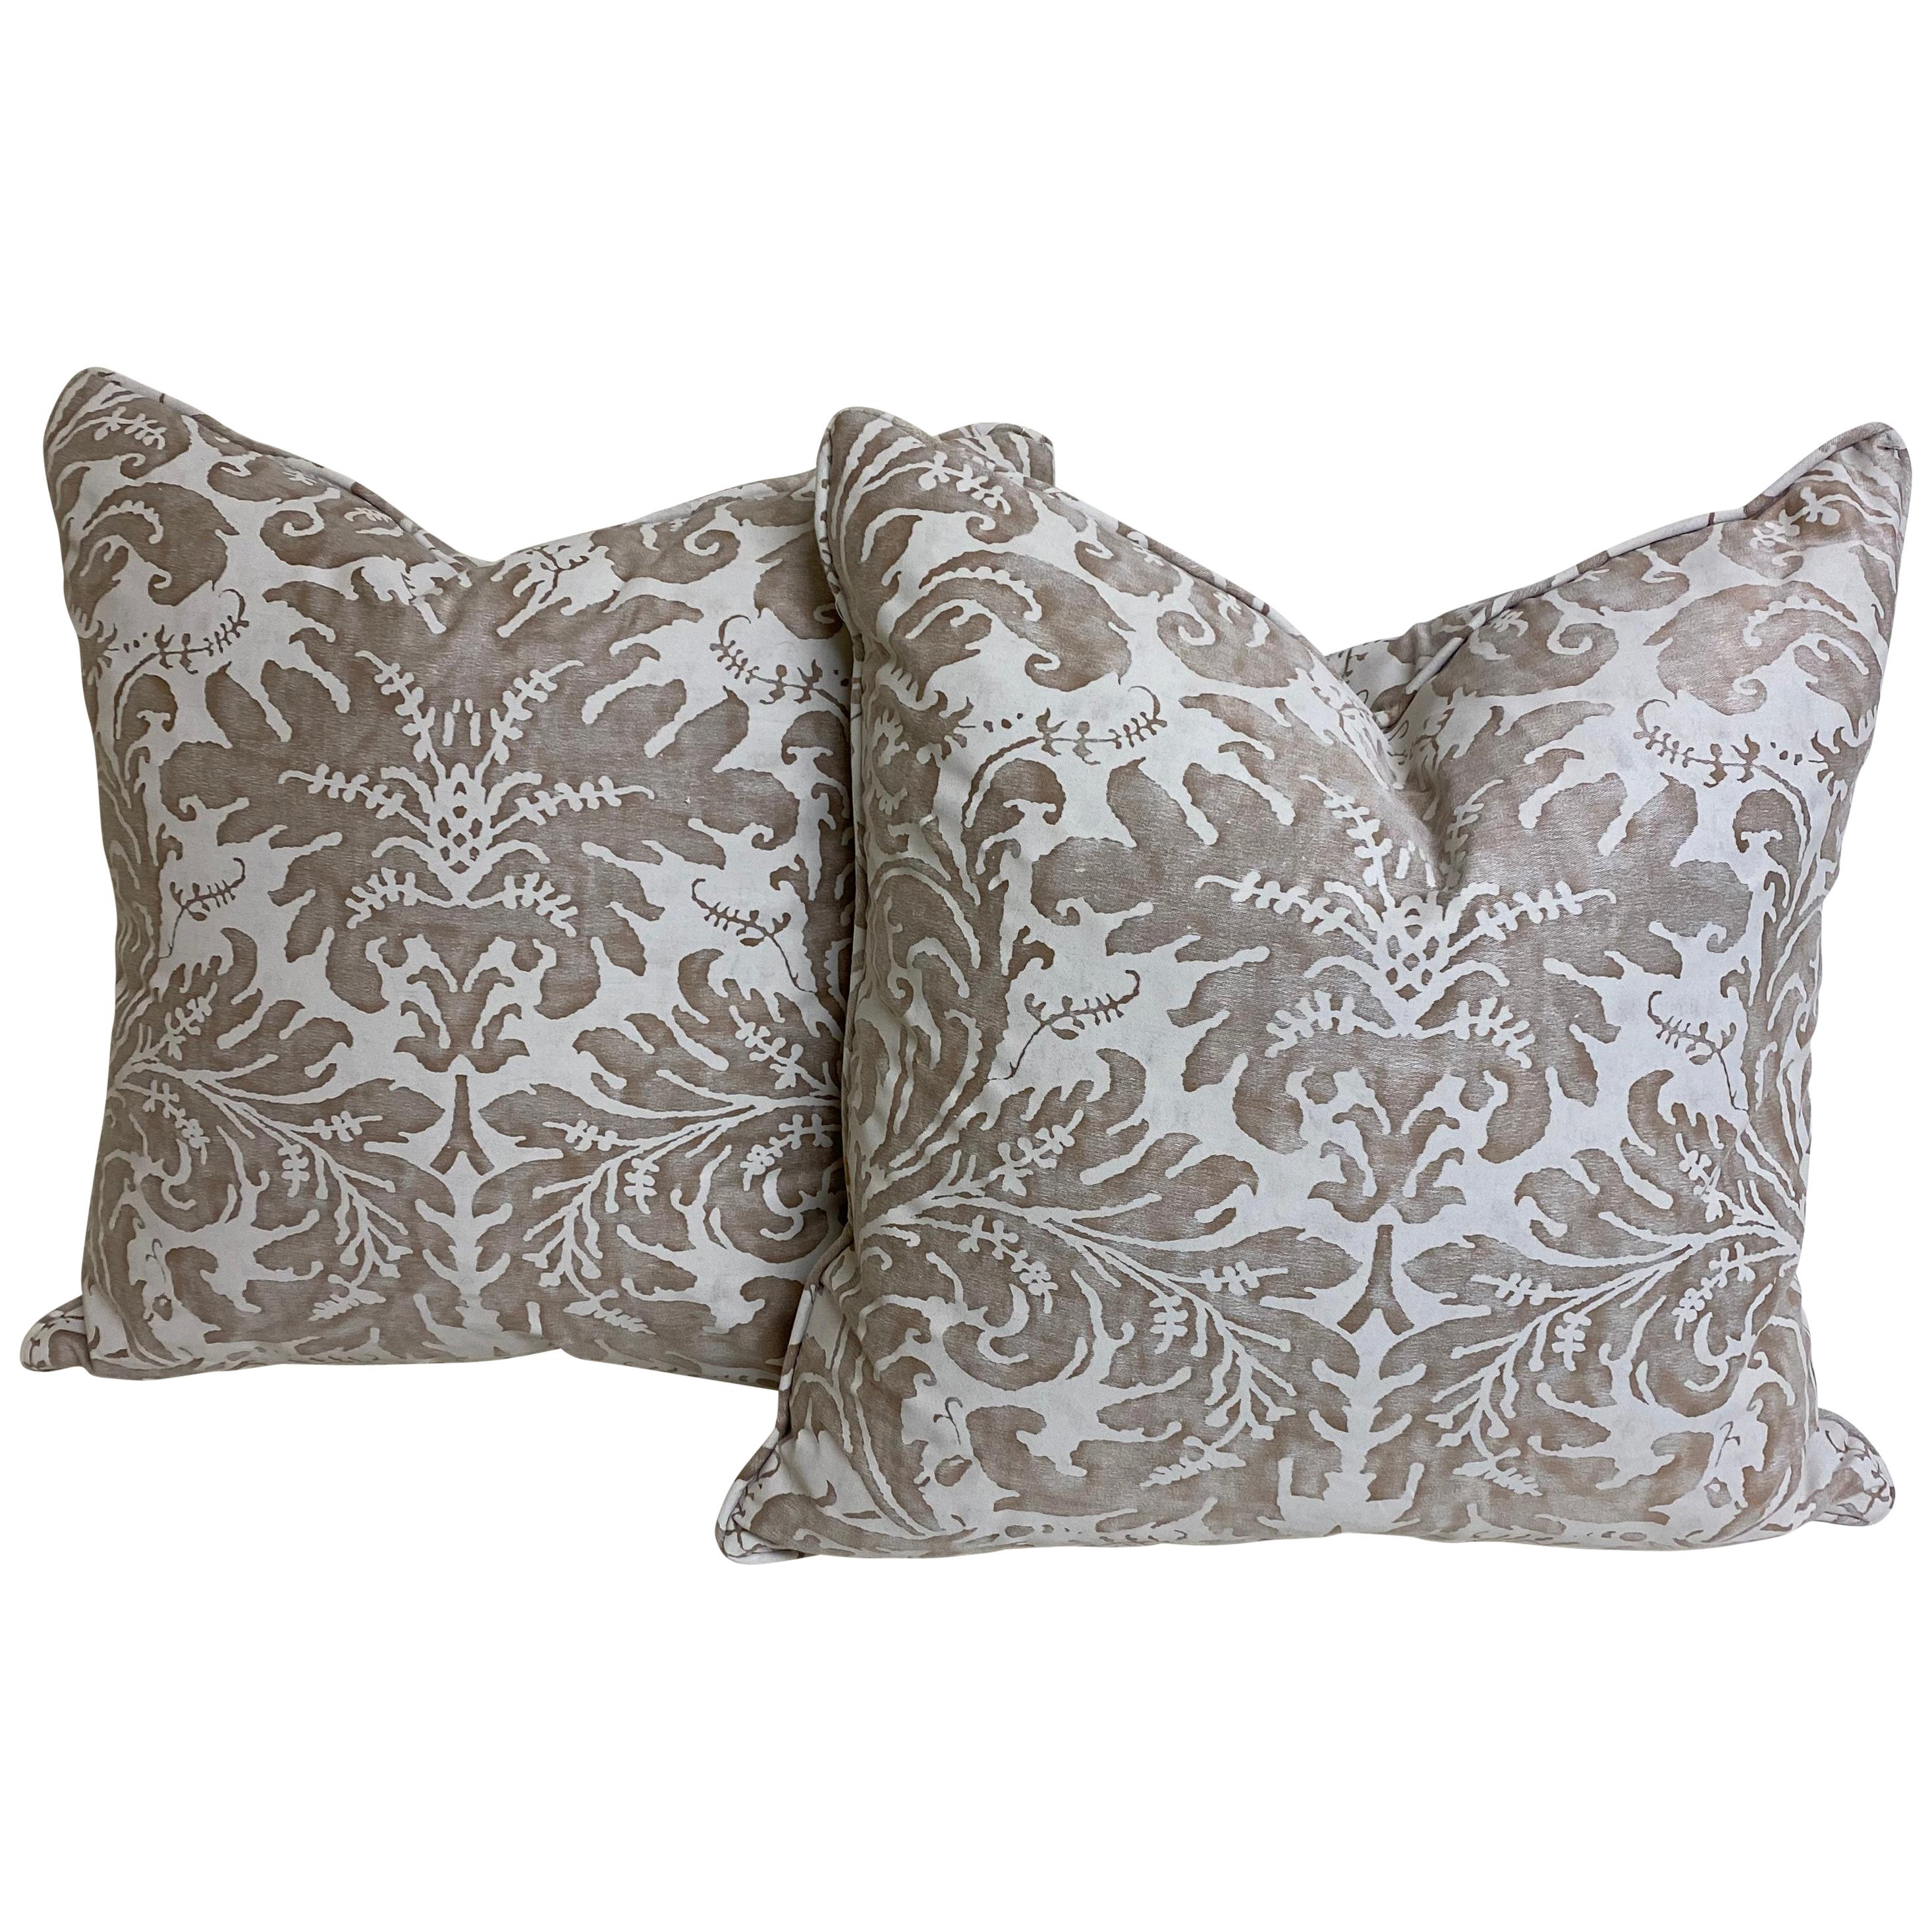 "Pair of Fortuny Cushions in Silvery-Taupe and White in the ""Lucrezia"" Pattern"